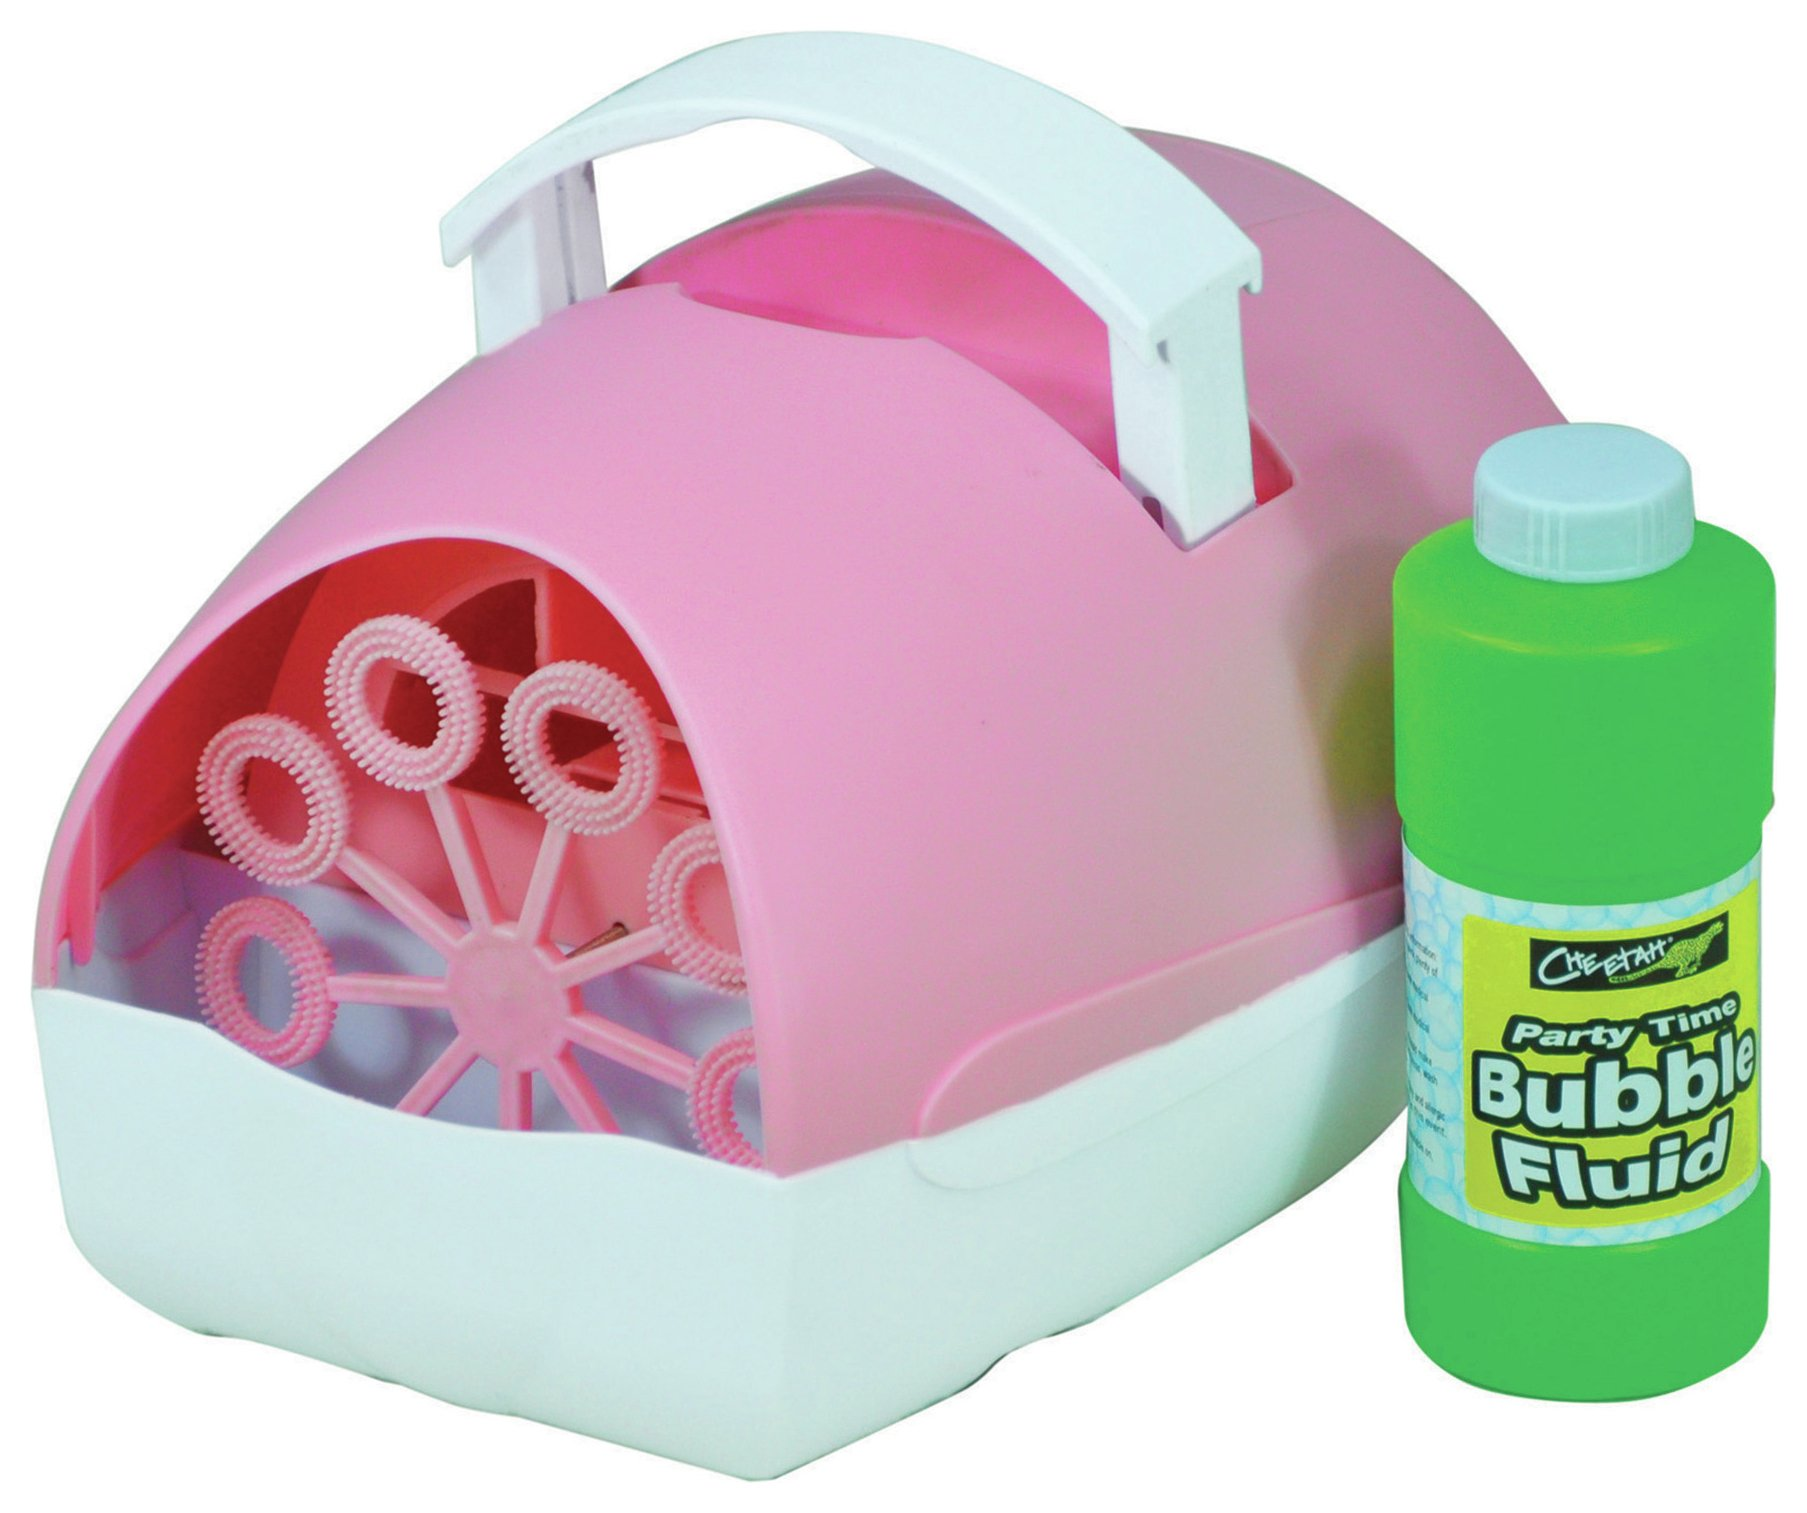 Image of Cheetah Party Time Battery Operated Bubble Machine - Pink.